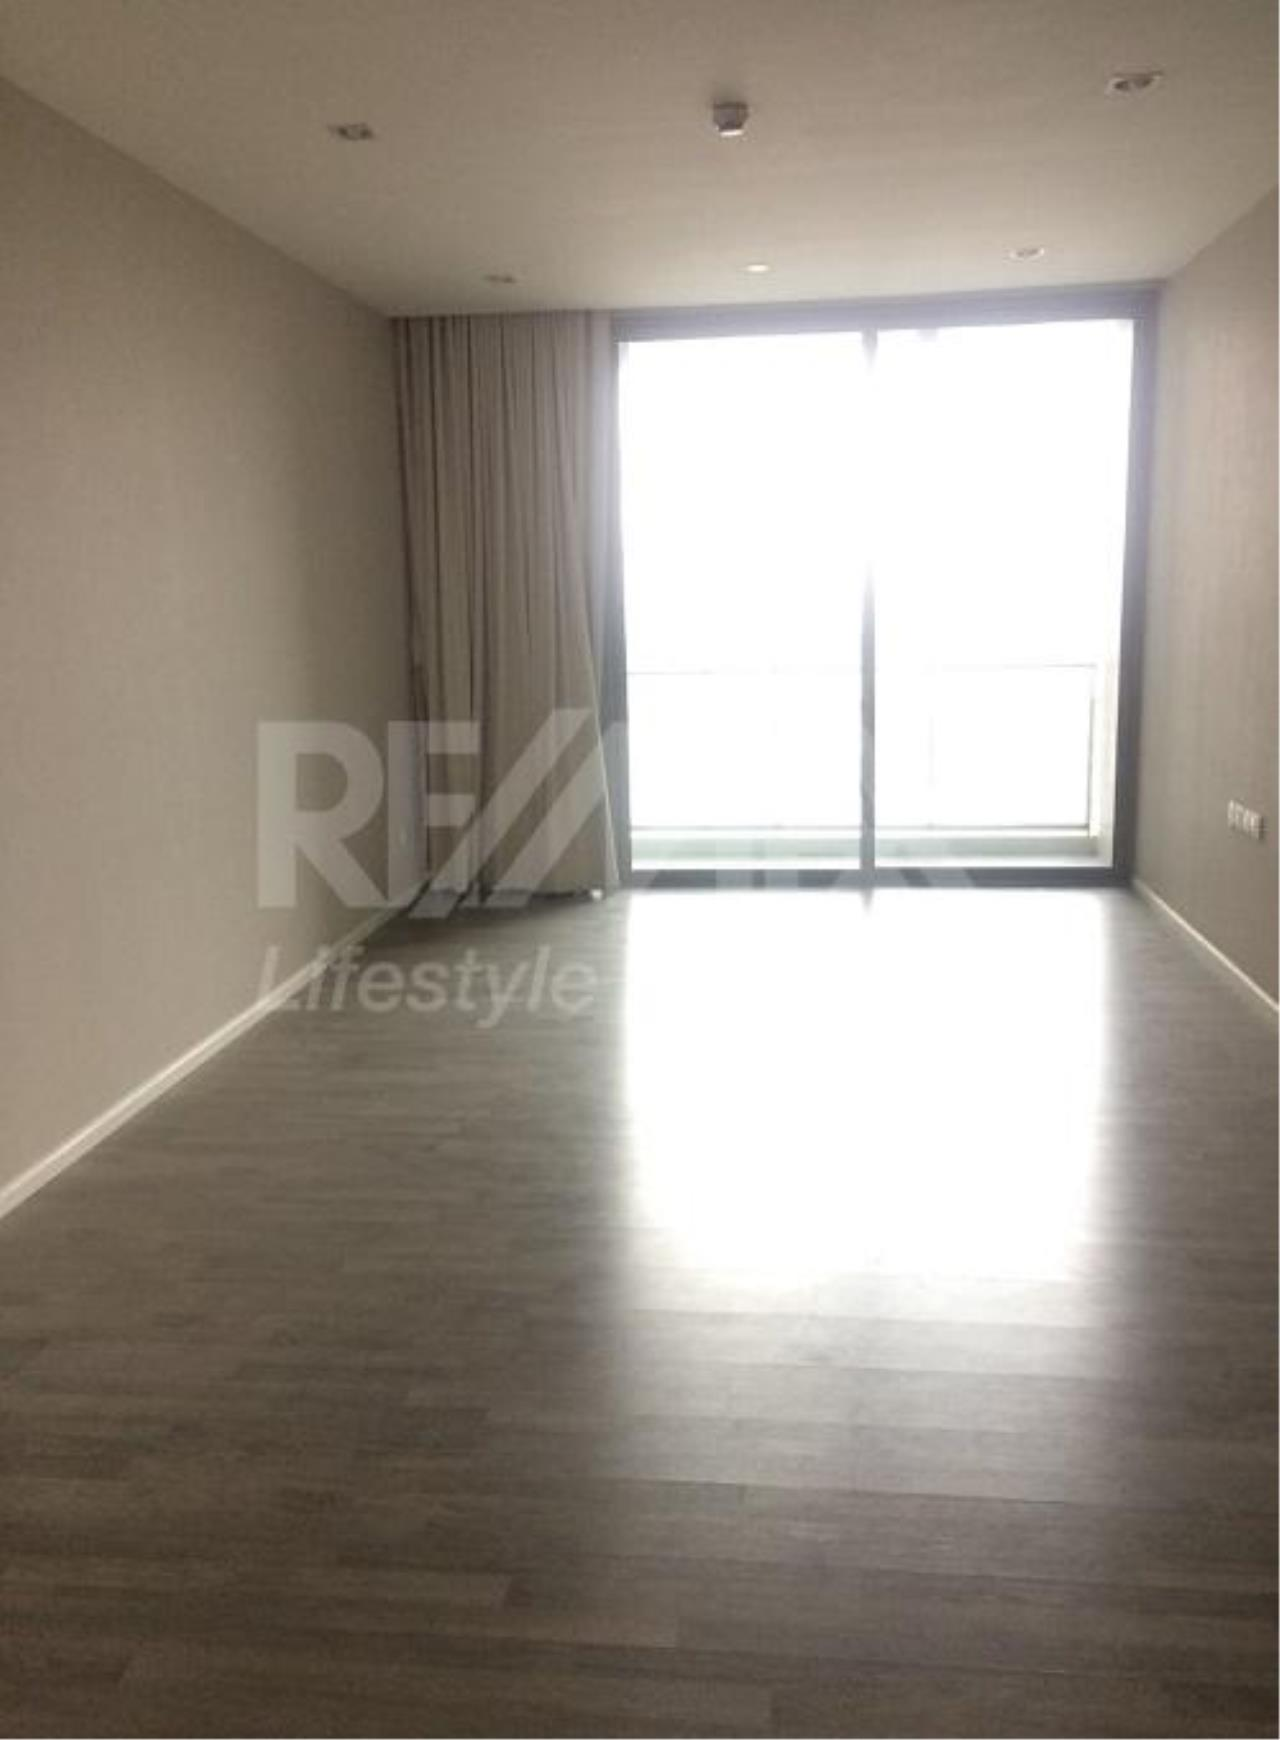 RE/MAX LifeStyle Property Agency's The Room Sukhumvit 69 3